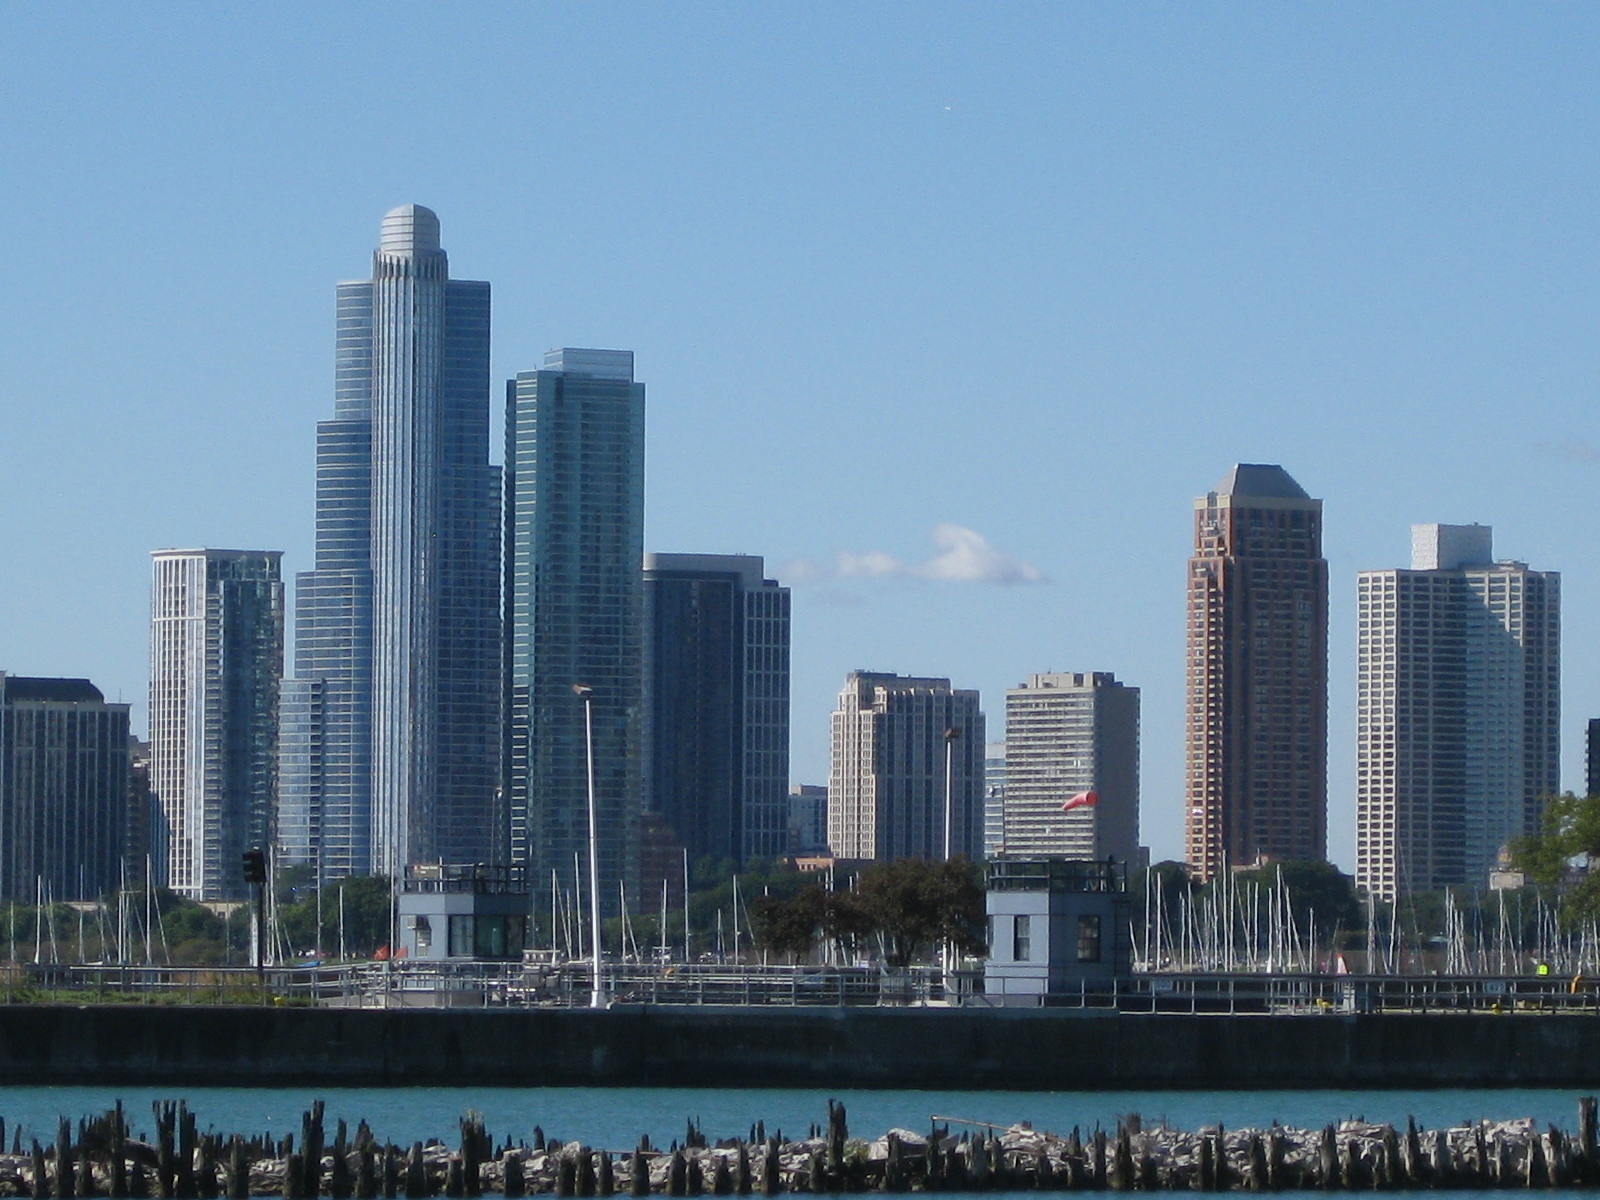 CityScapes - Chicago